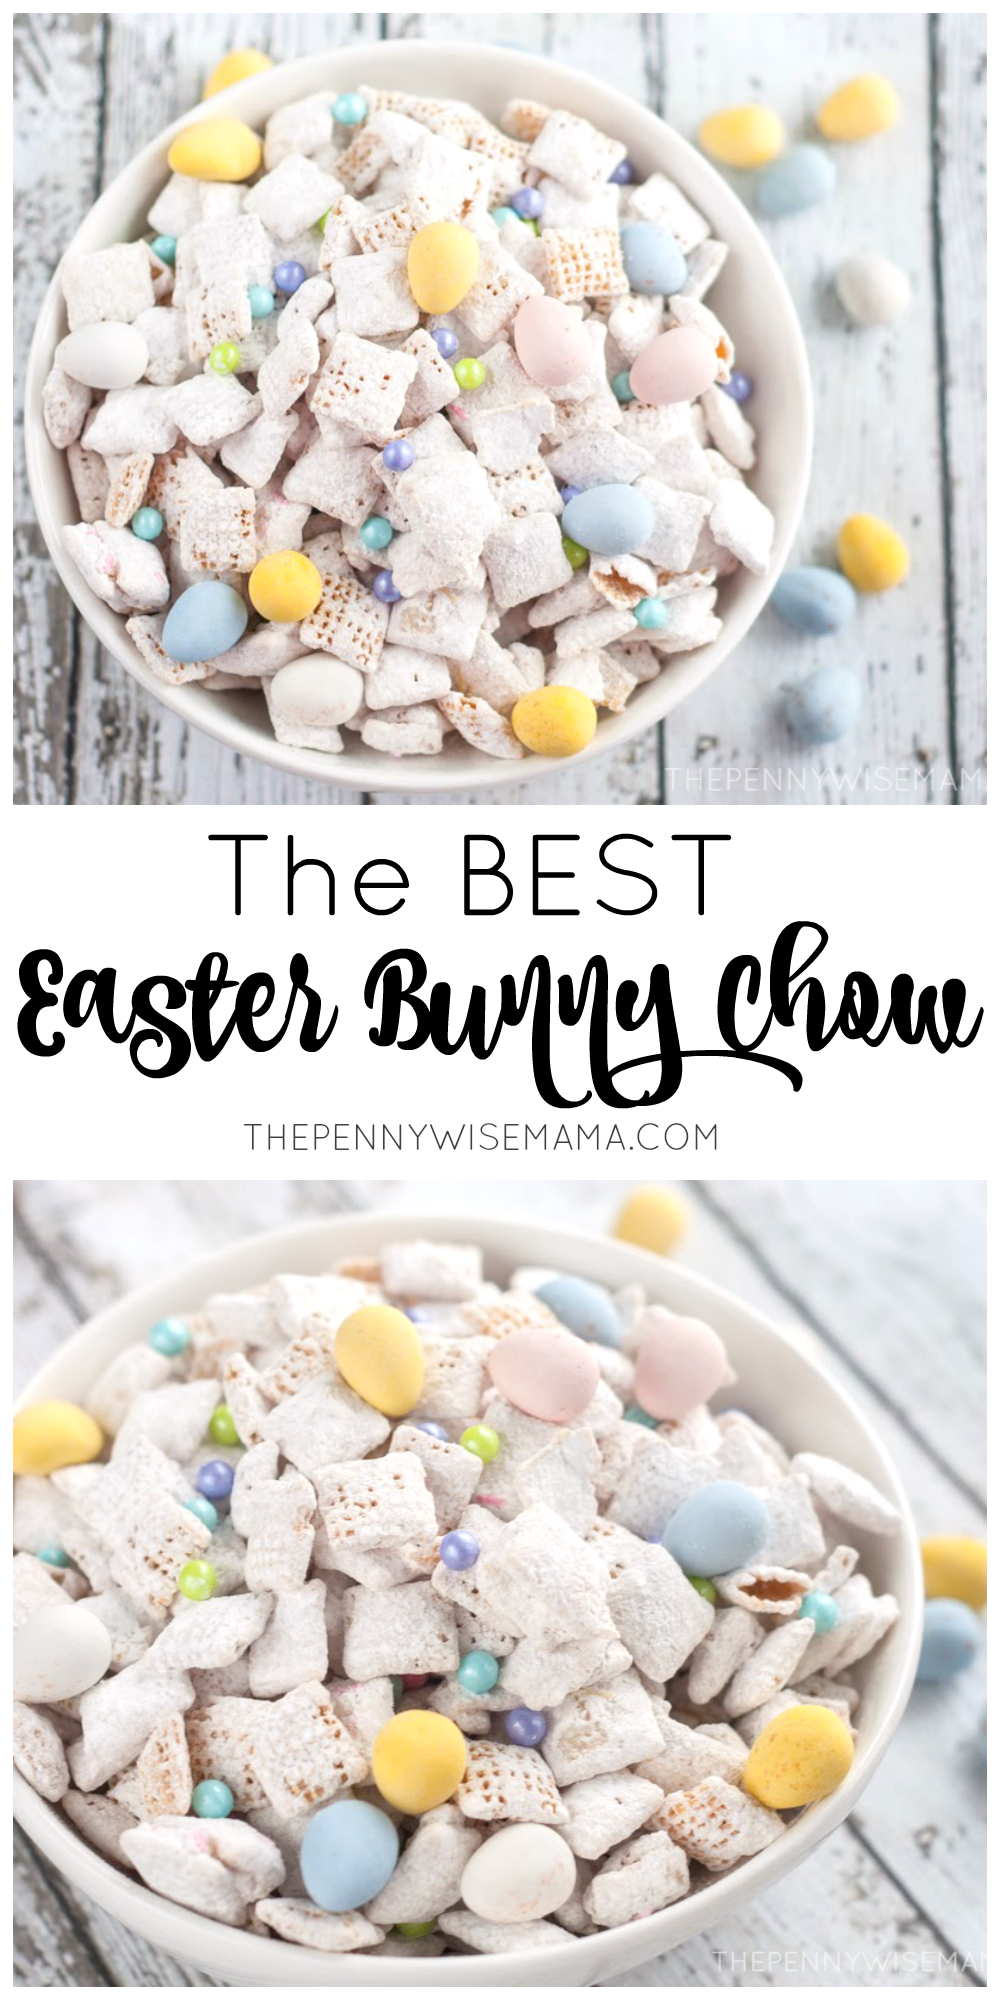 The BEST Easter Bunny Chow (muddy buddies) - simple and delicious recipe